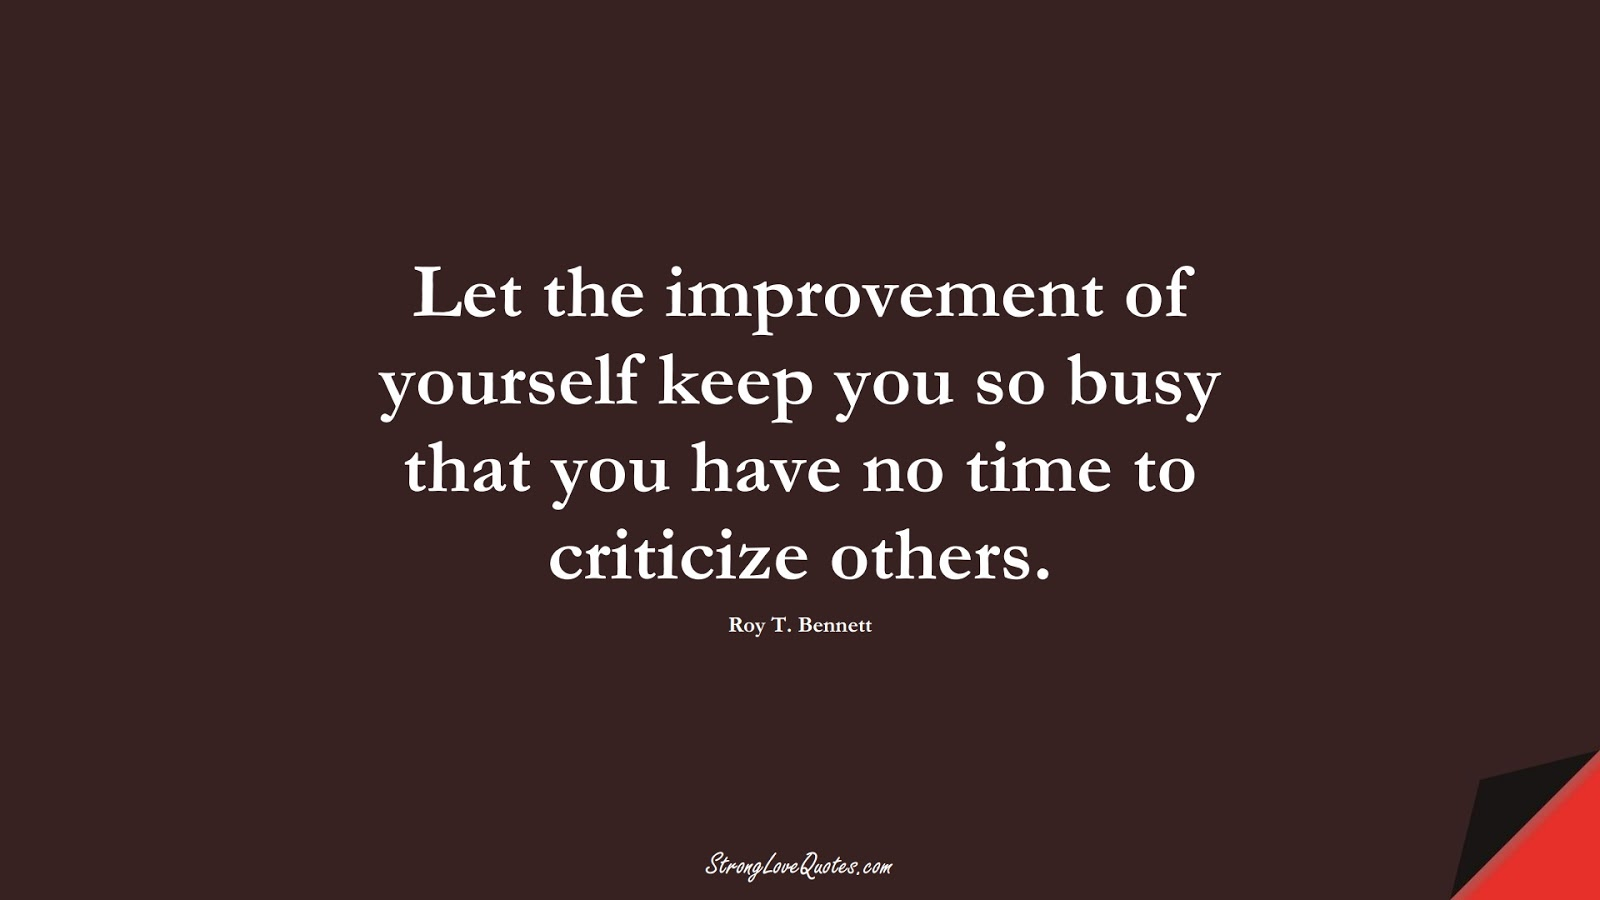 Let the improvement of yourself keep you so busy that you have no time to criticize others. (Roy T. Bennett);  #LearningQuotes